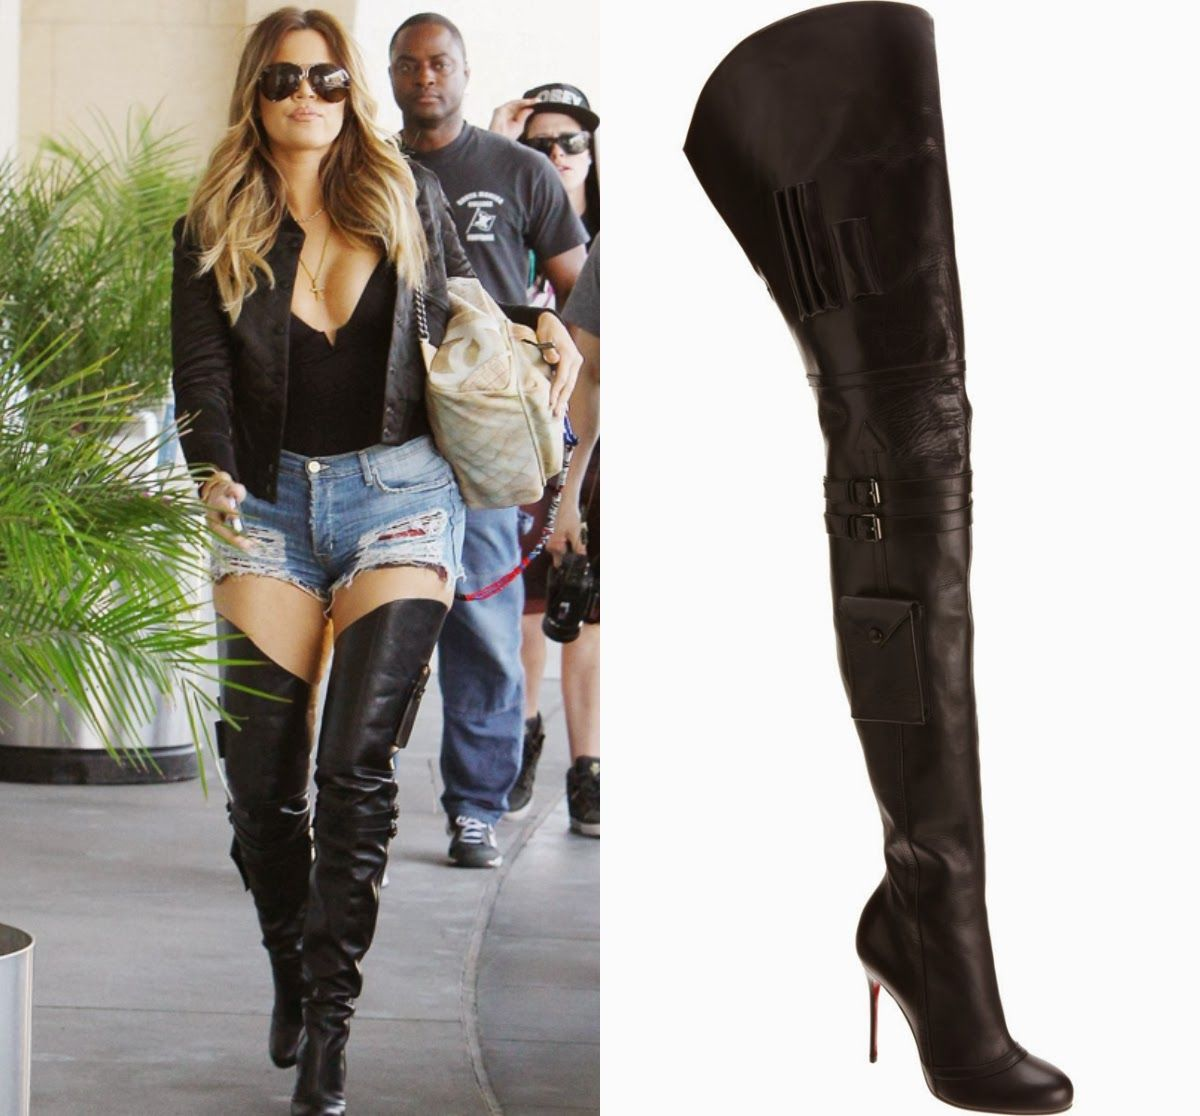 Women Motorcycle Thigh High Boots Black Leather Sexy | Boots ...